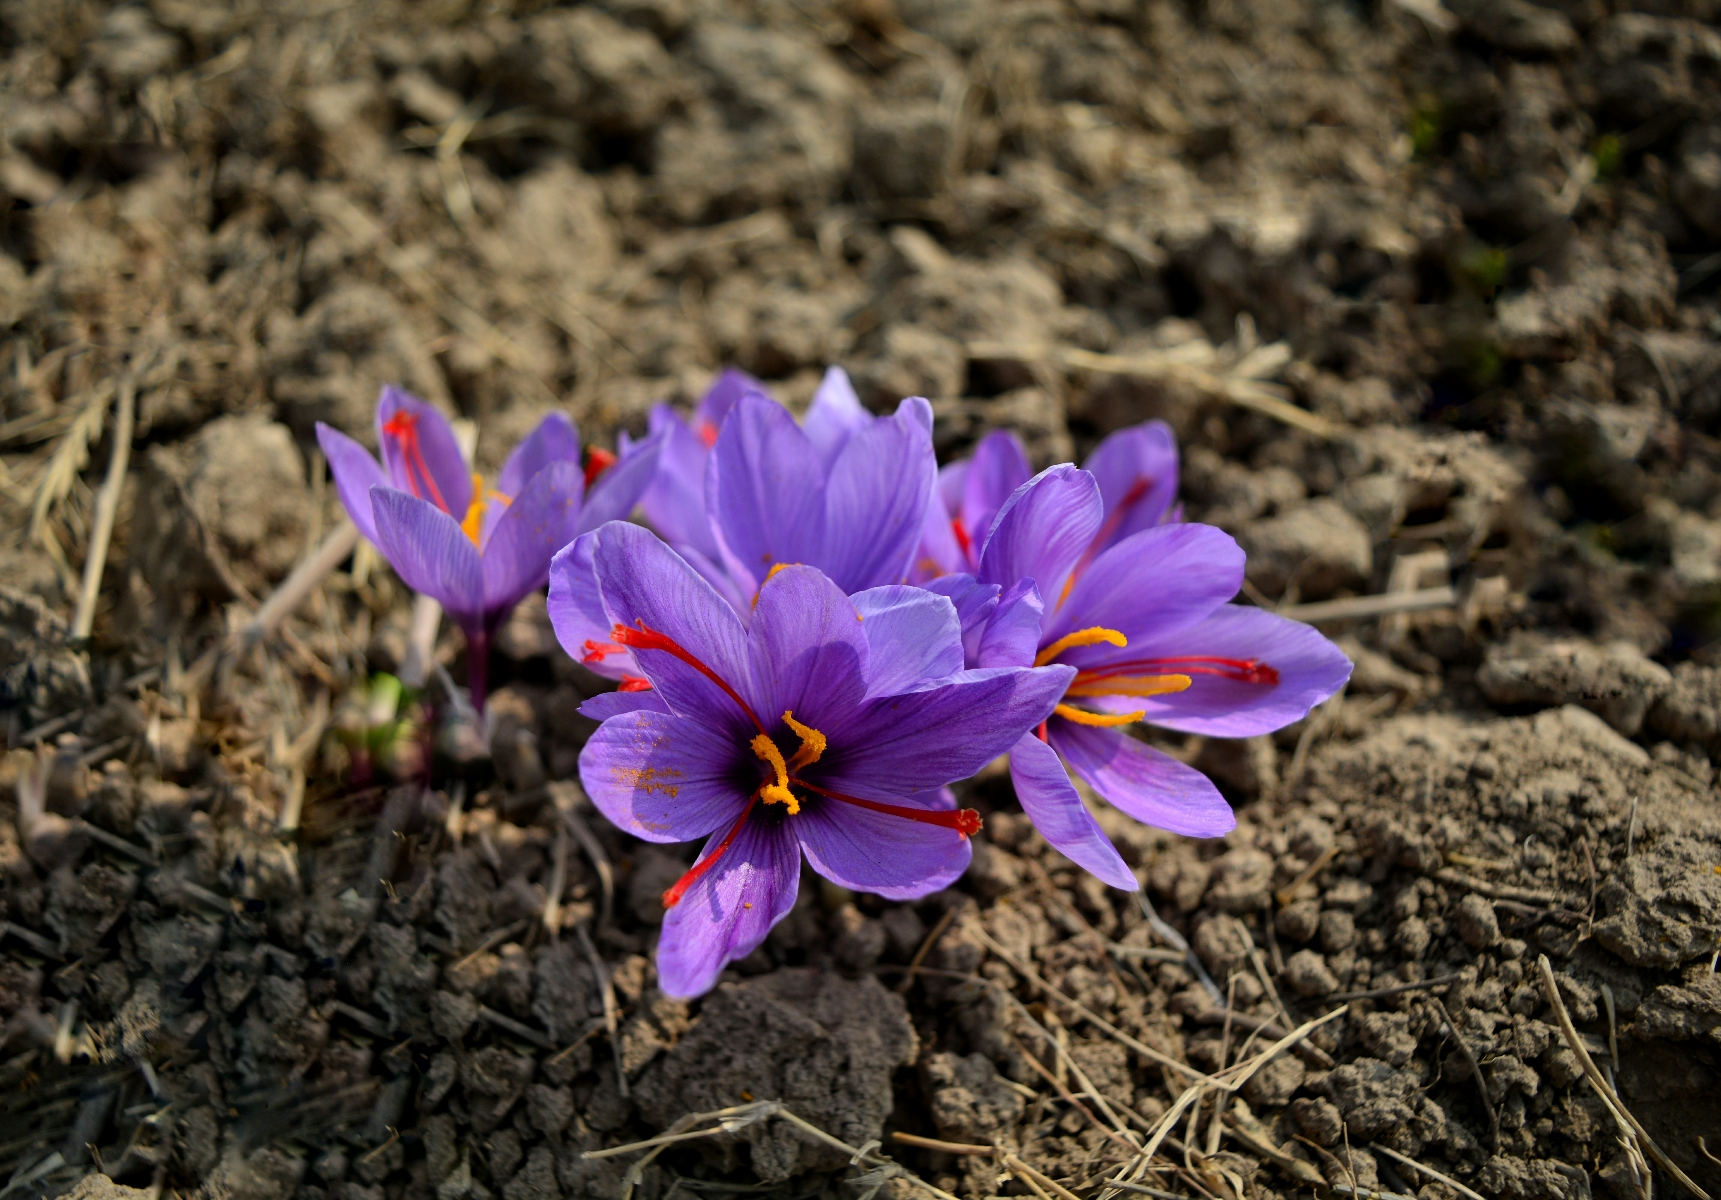 A blooming saffron flower. The three maroon colored stigmas is the spice.